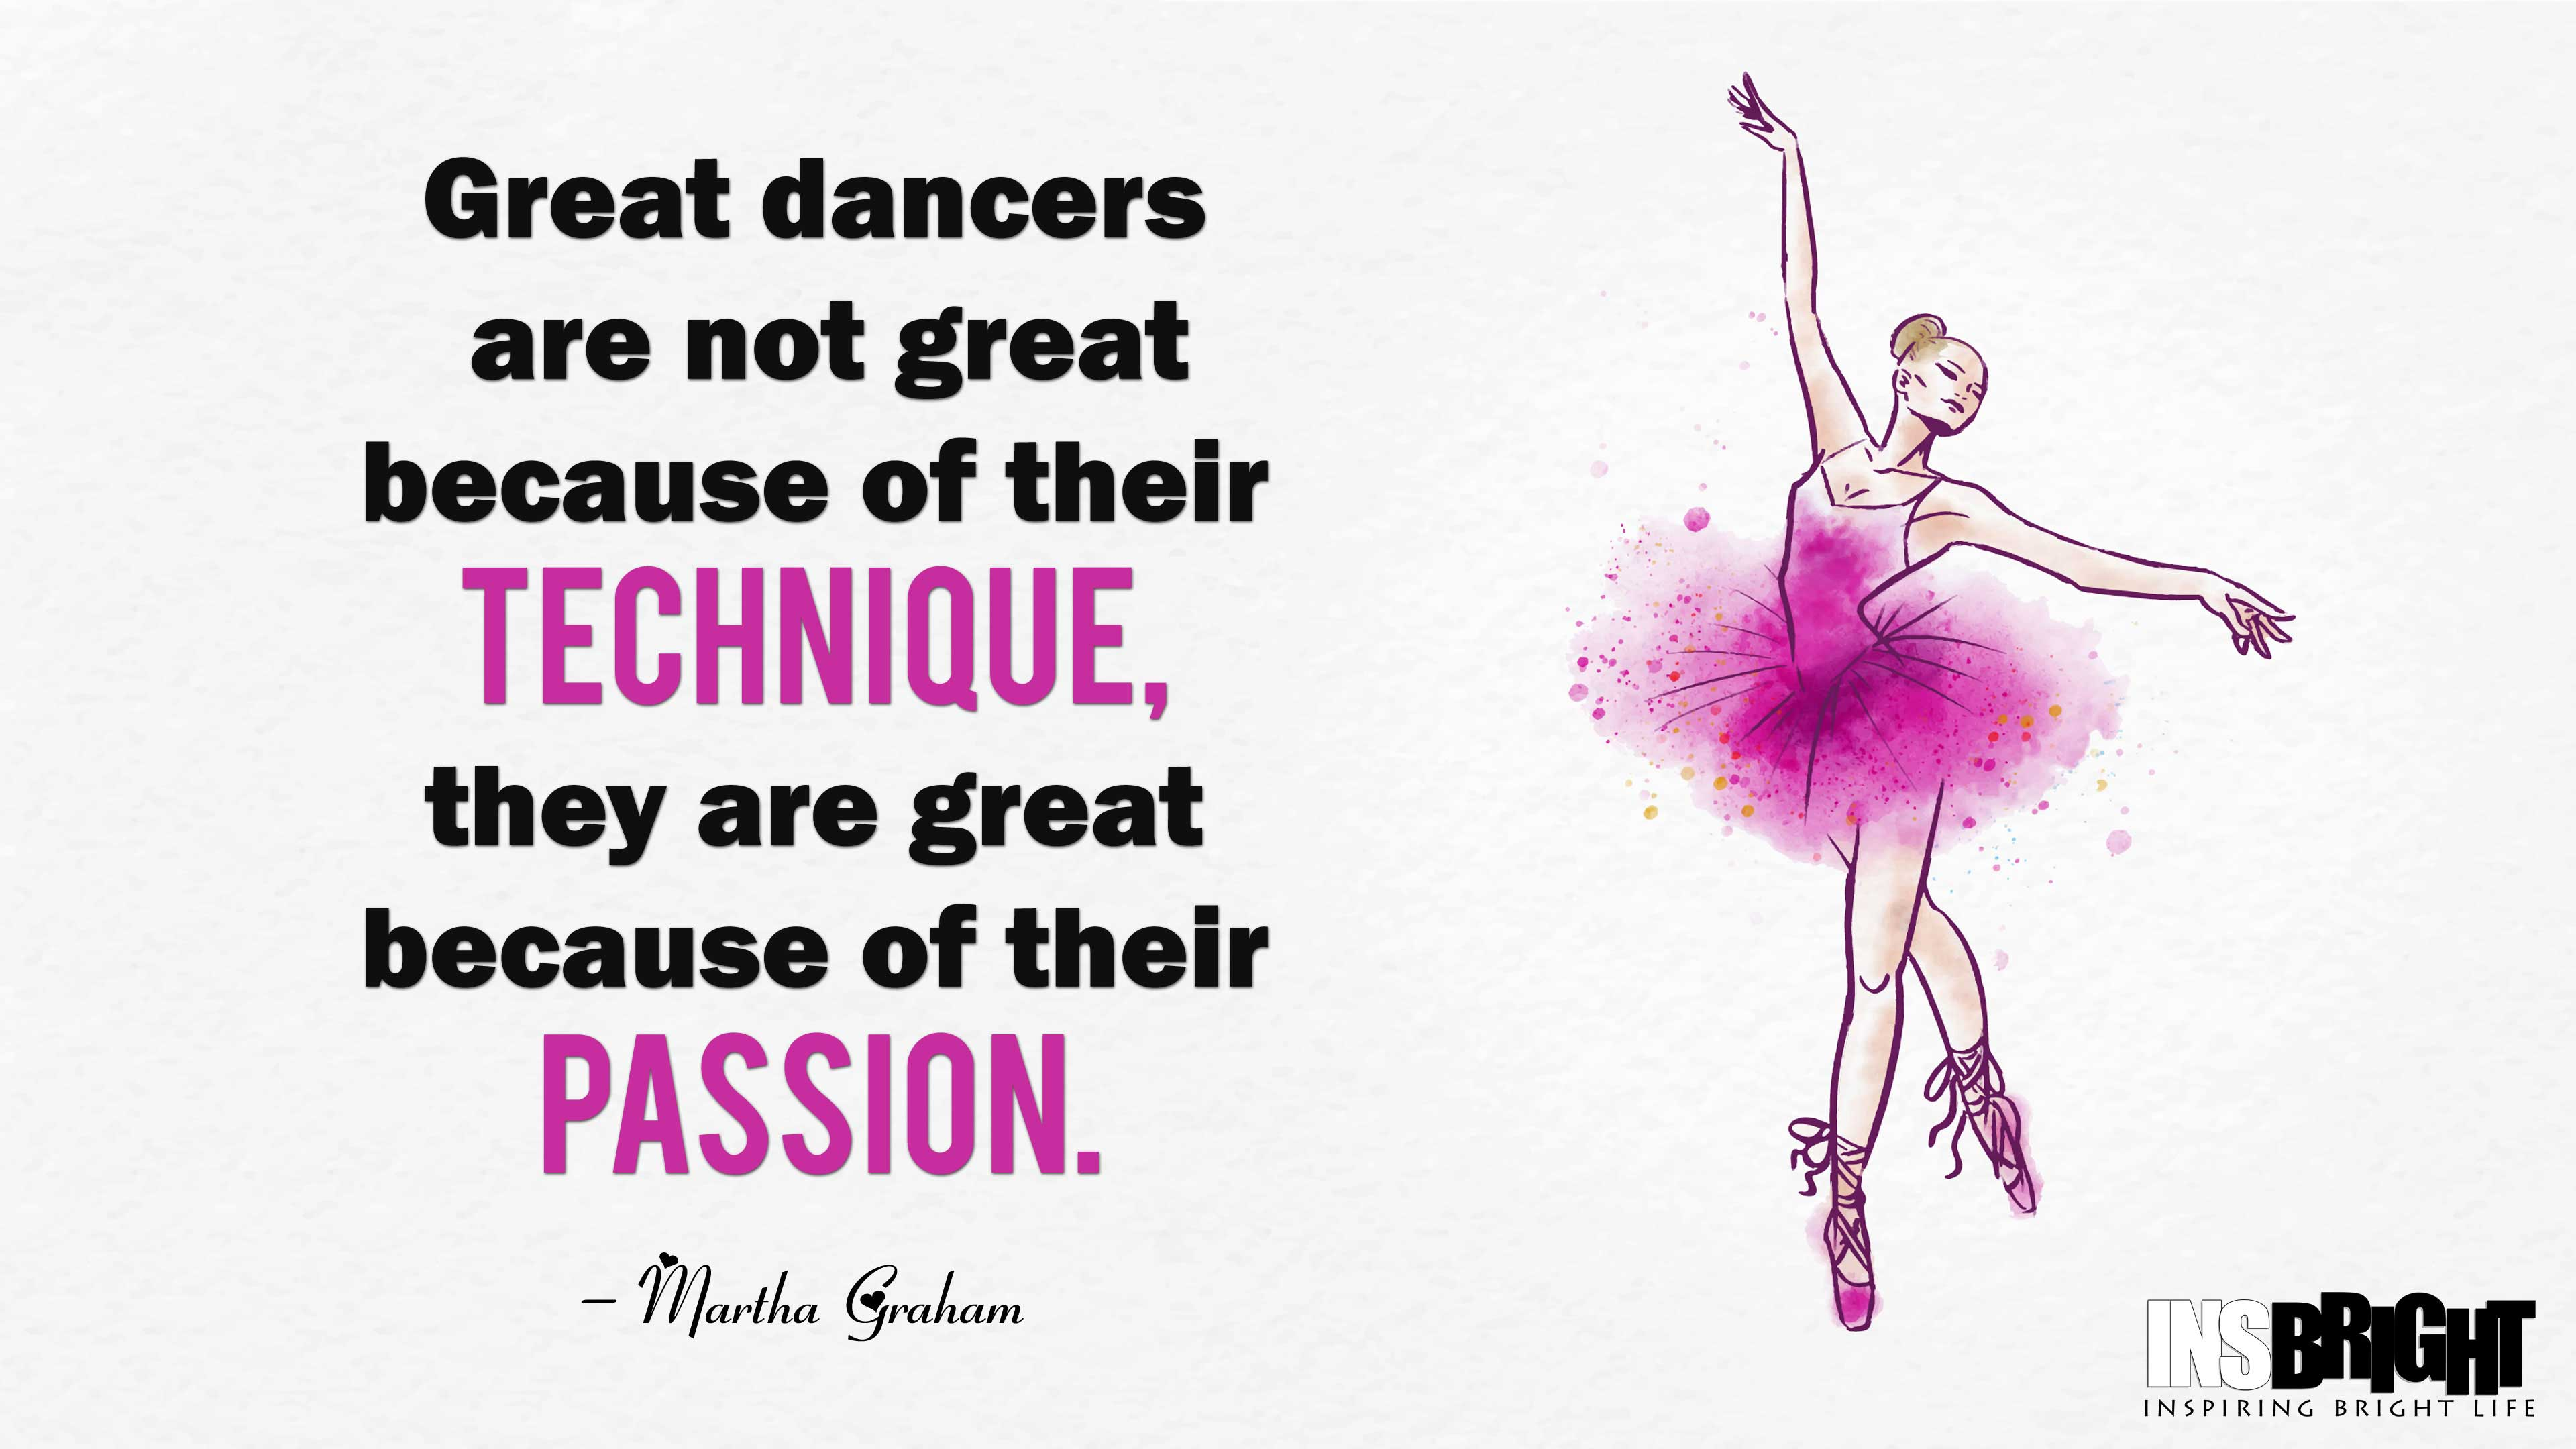 Inspirational Dance Quotes Delectable 10 Inspirational Dance Quotes Imagesfamous Dancer  Insbright